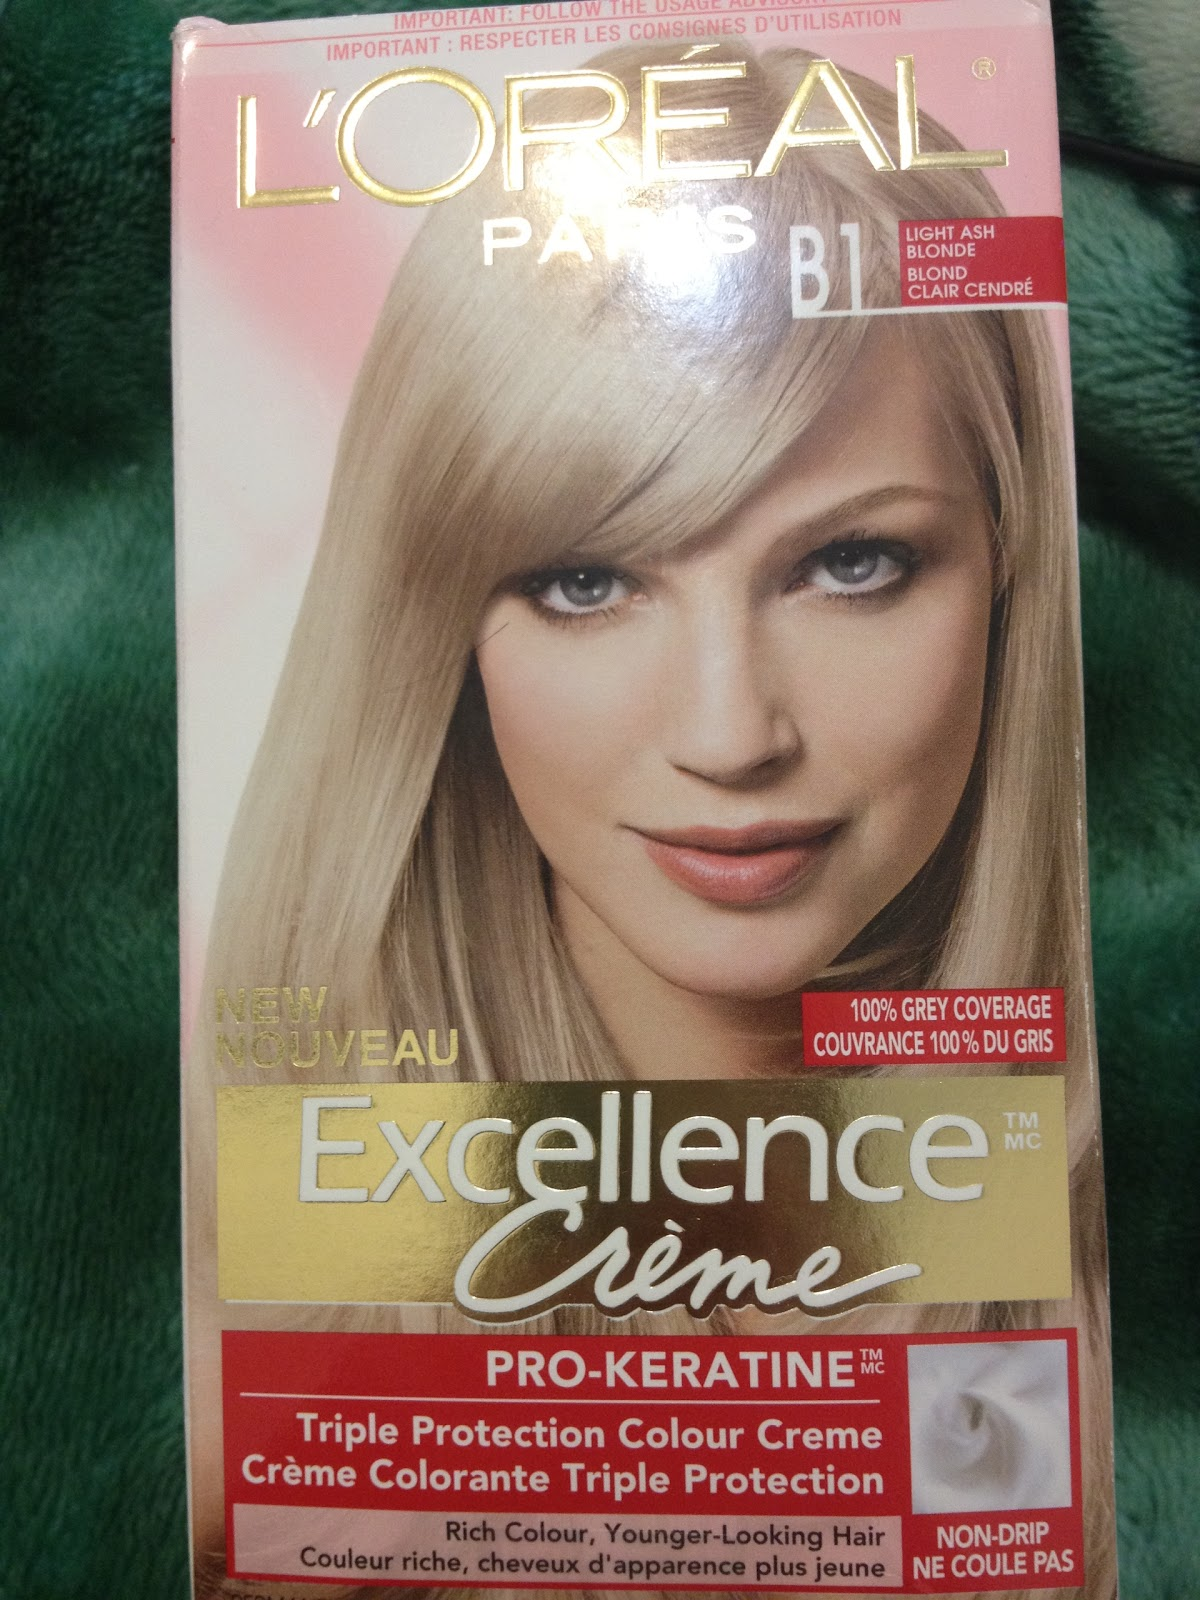 How I Dye My Hair Blonde Using L'Oreal Excellence B1 Light Ash Blonde